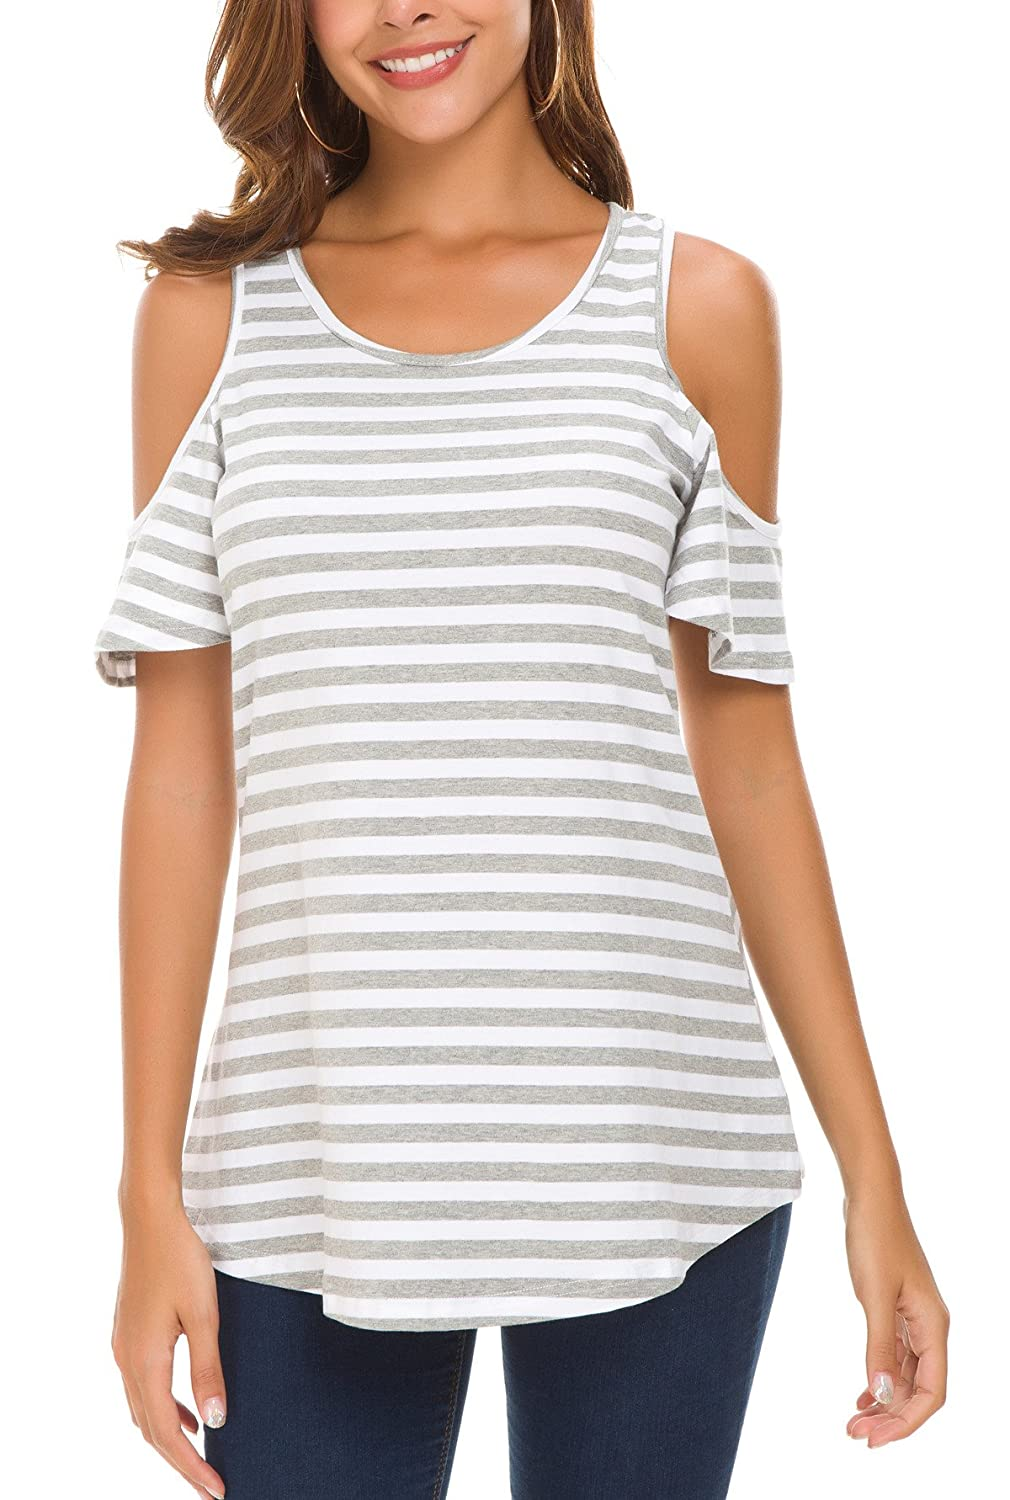 ecaae31b834ae Top 10 wholesale Cold Shoulder Striped Blouse - Chinabrands.com